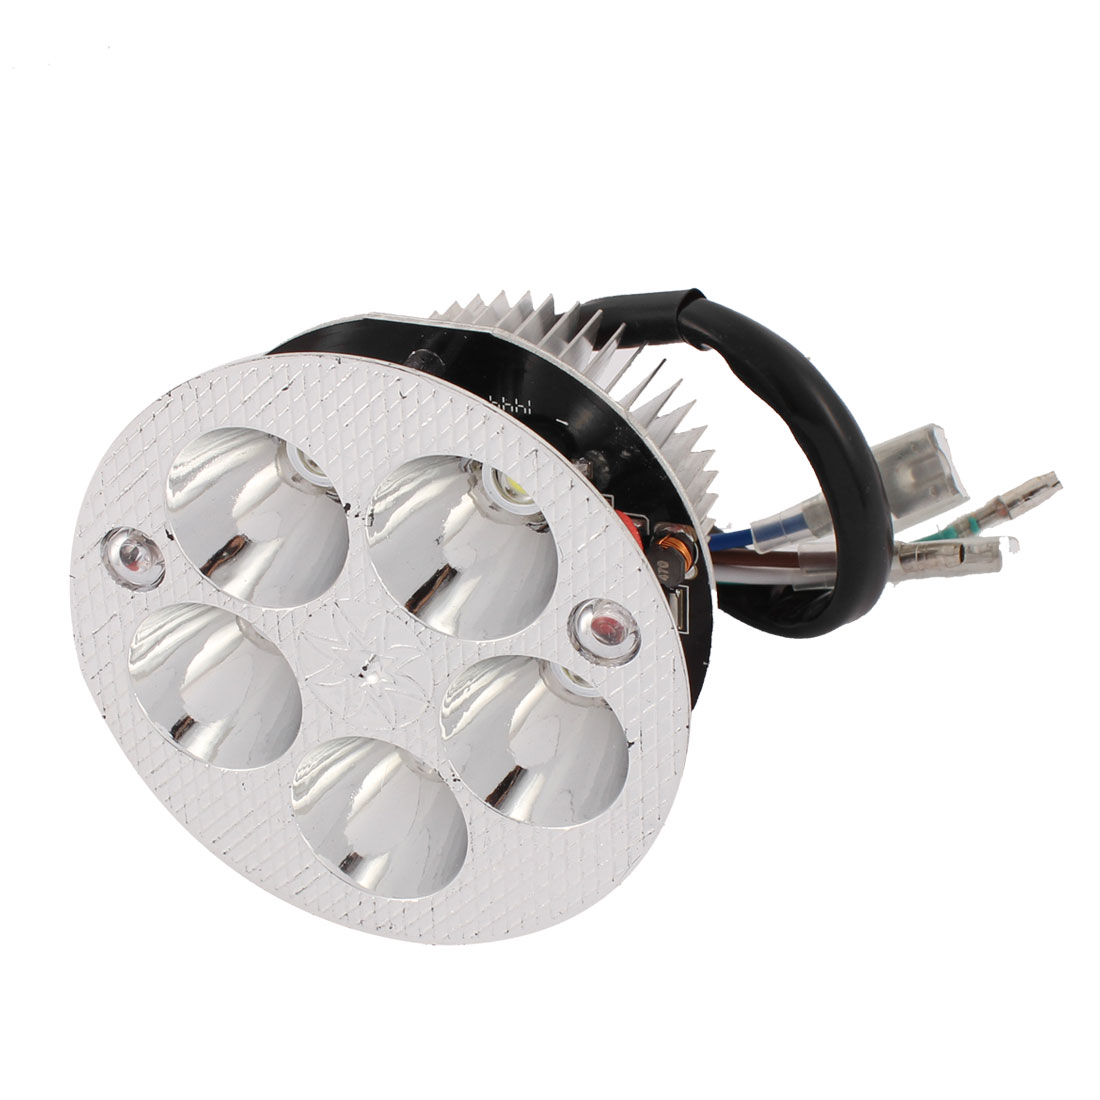 15W Silver Tone Metal 5 White LED Spot Light Decoration for Motorcycle